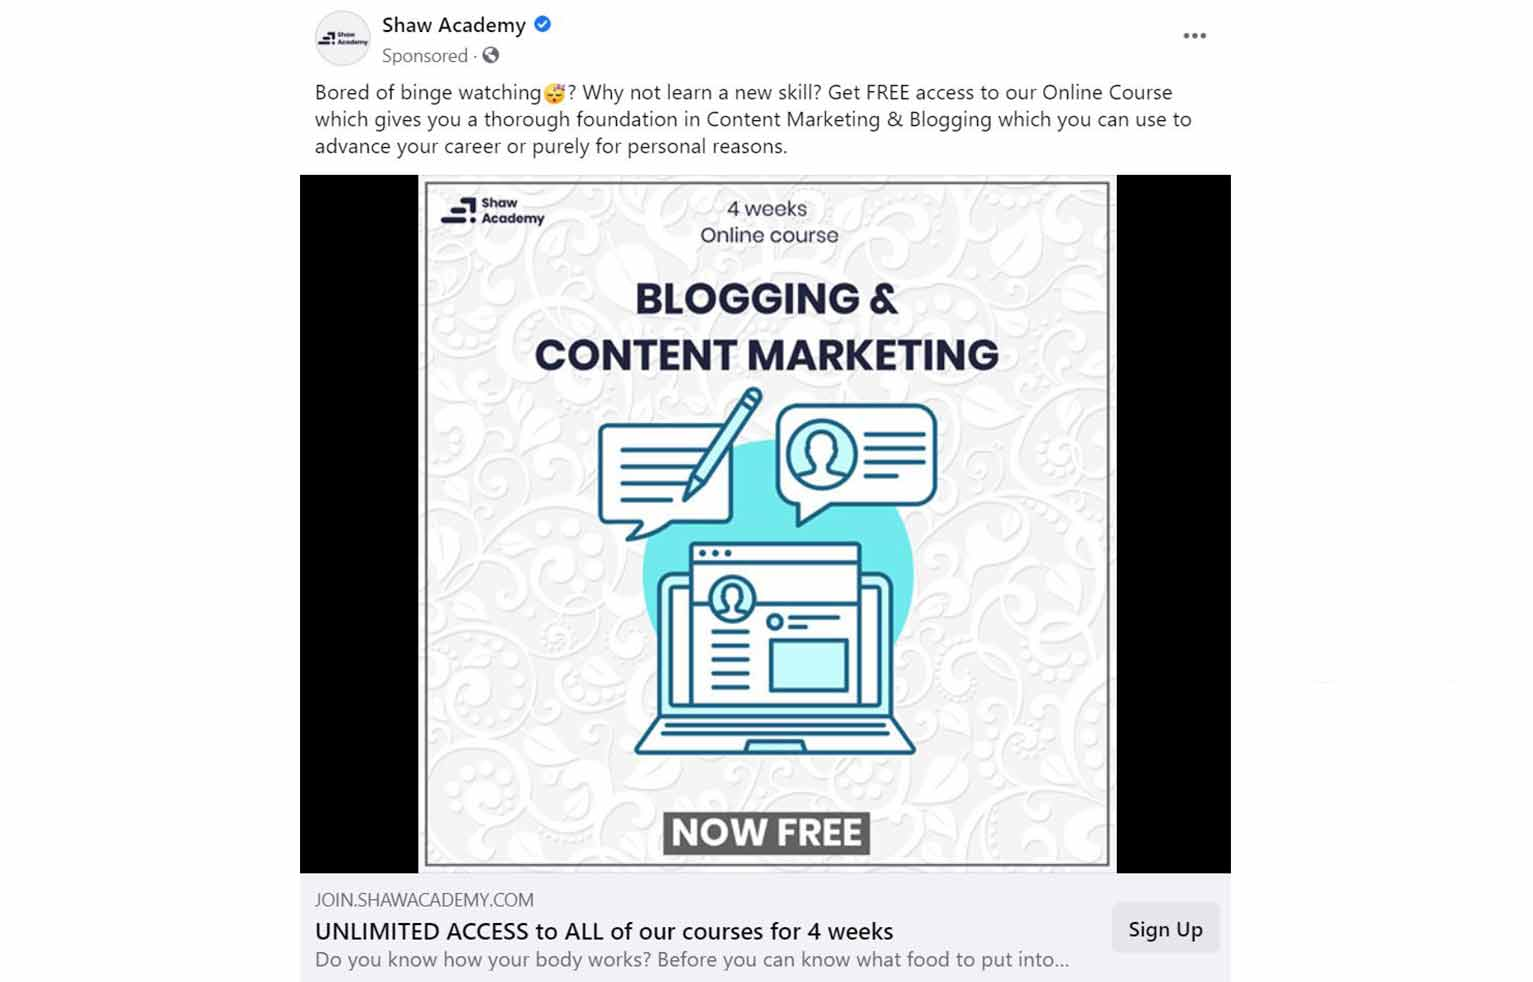 Shaw Academy's ad targets users that may have searched for blogging and content marketing information on Facebook.